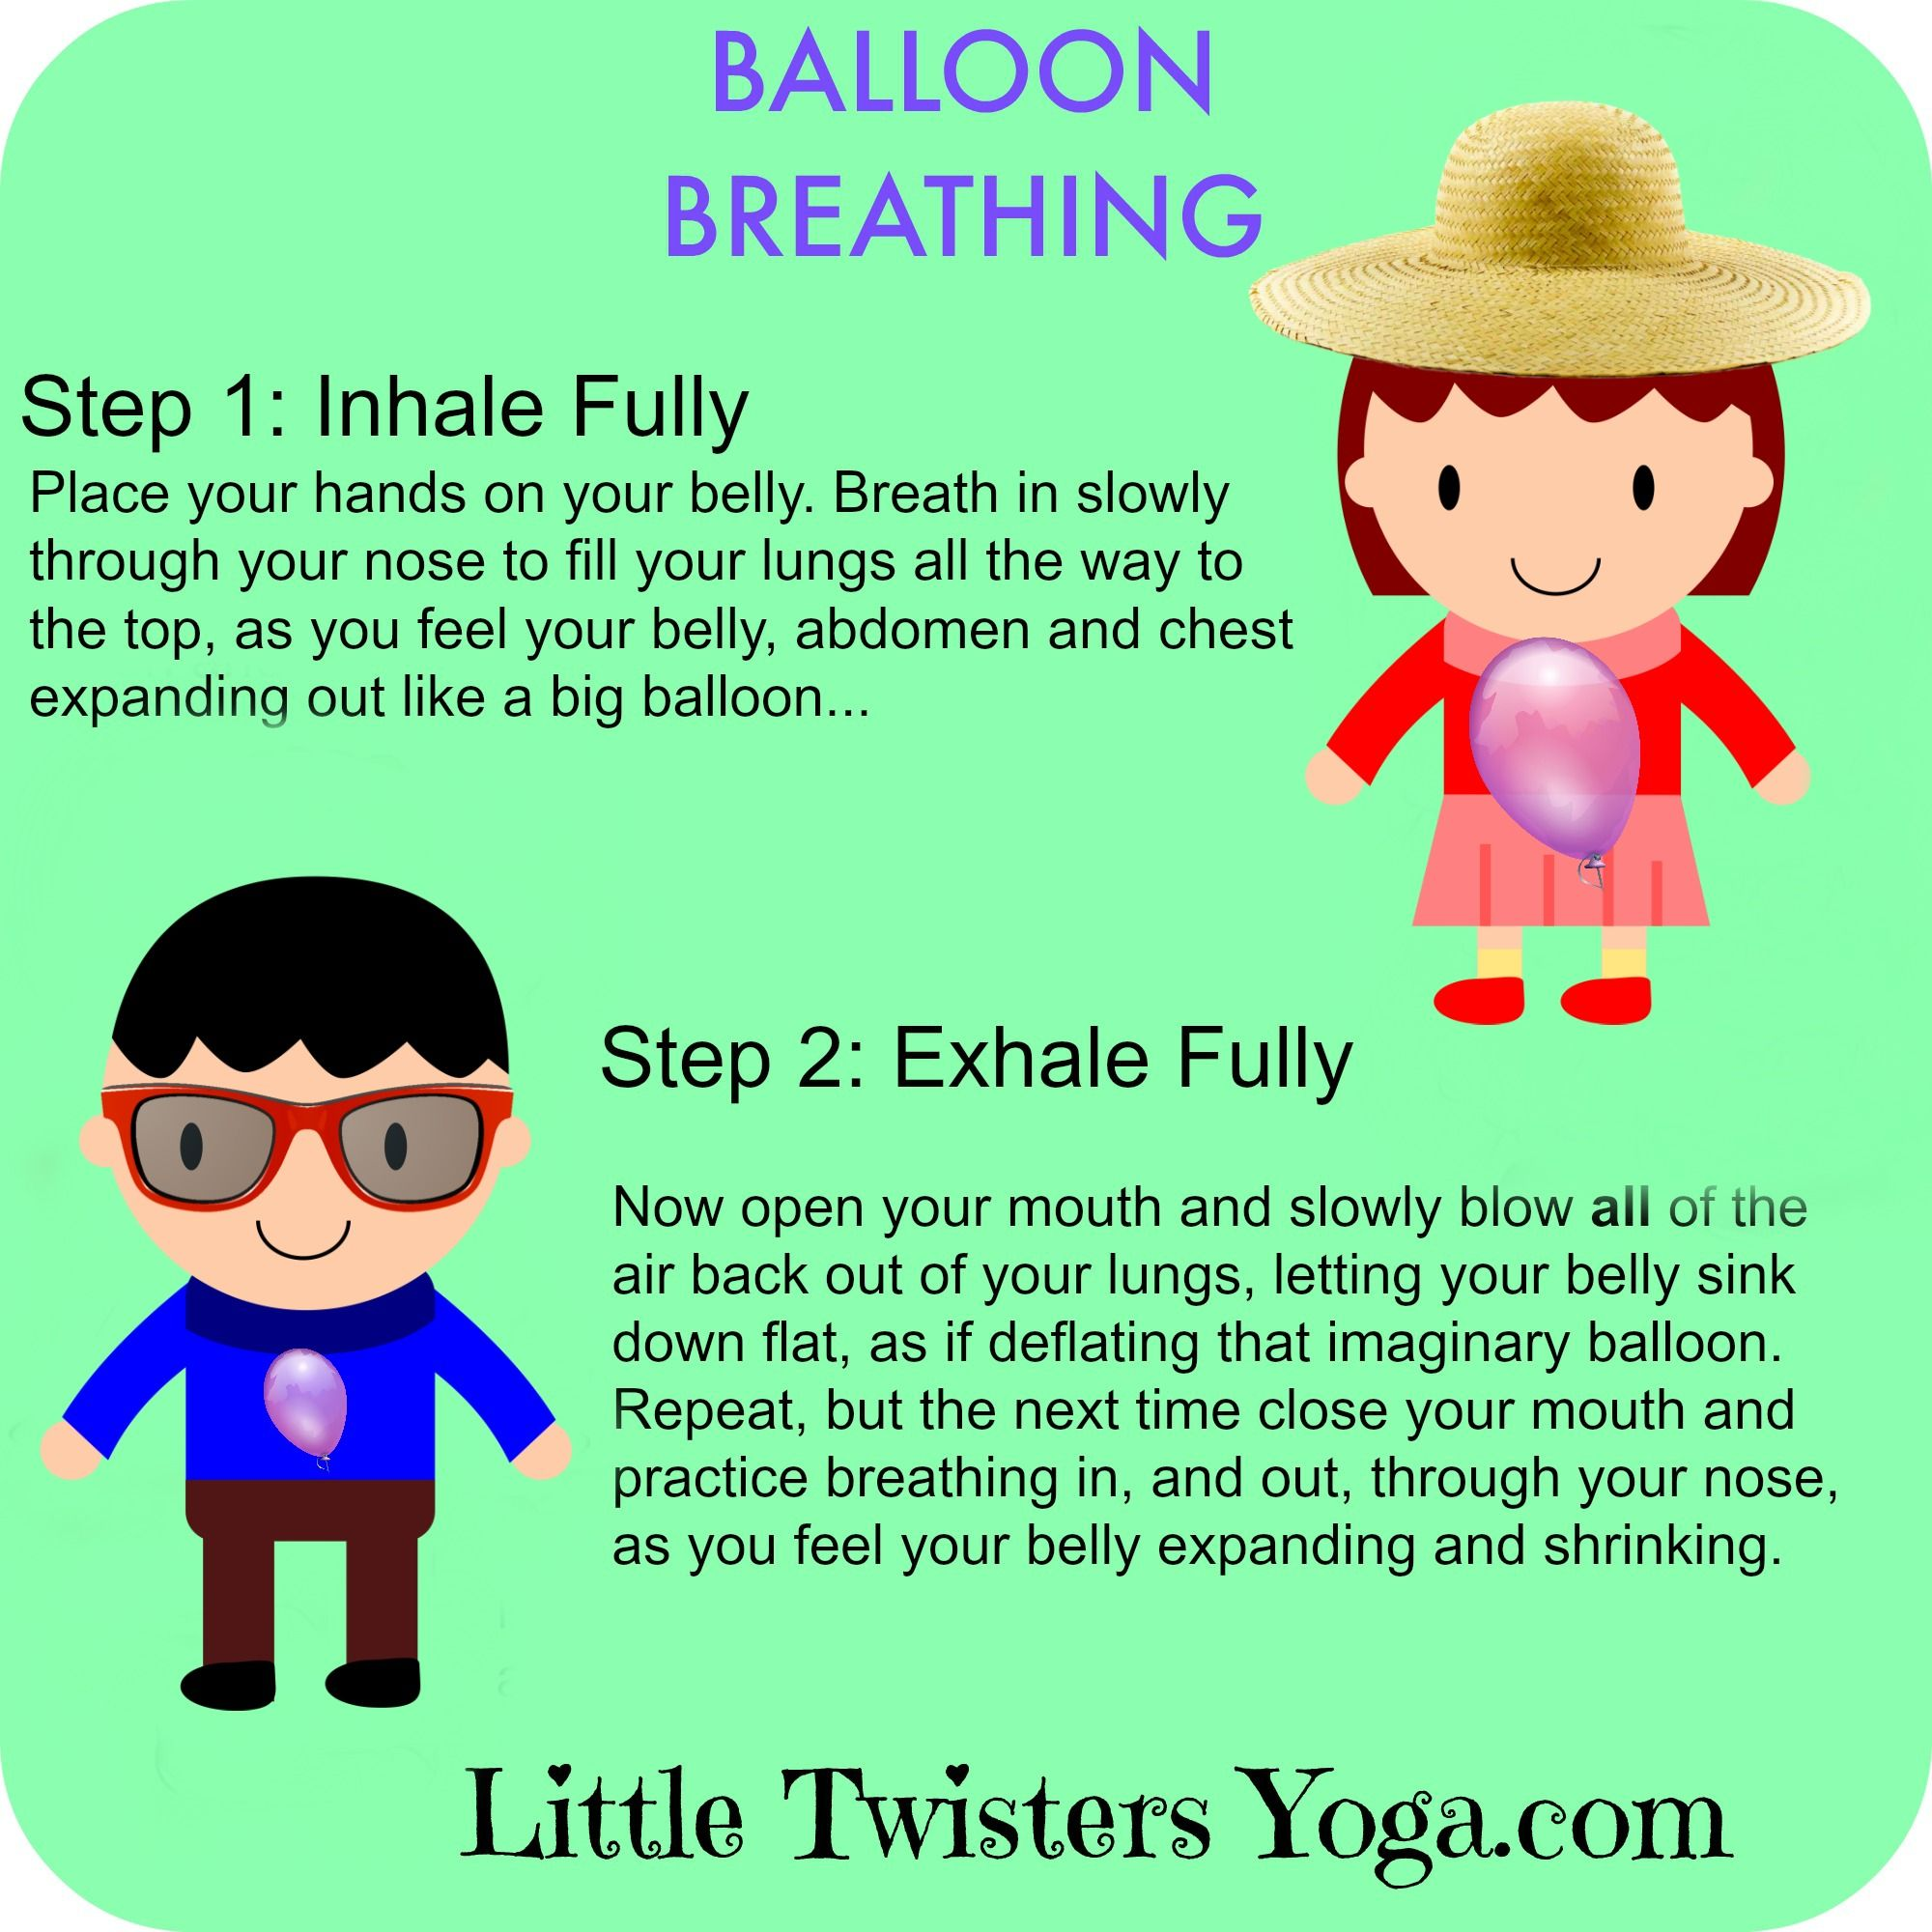 Great Visual For Teaching Deep Belly Or Balloon Breathing To Kids Even As Young 2 Learn More Calming Tips At LittleTwistersYoga